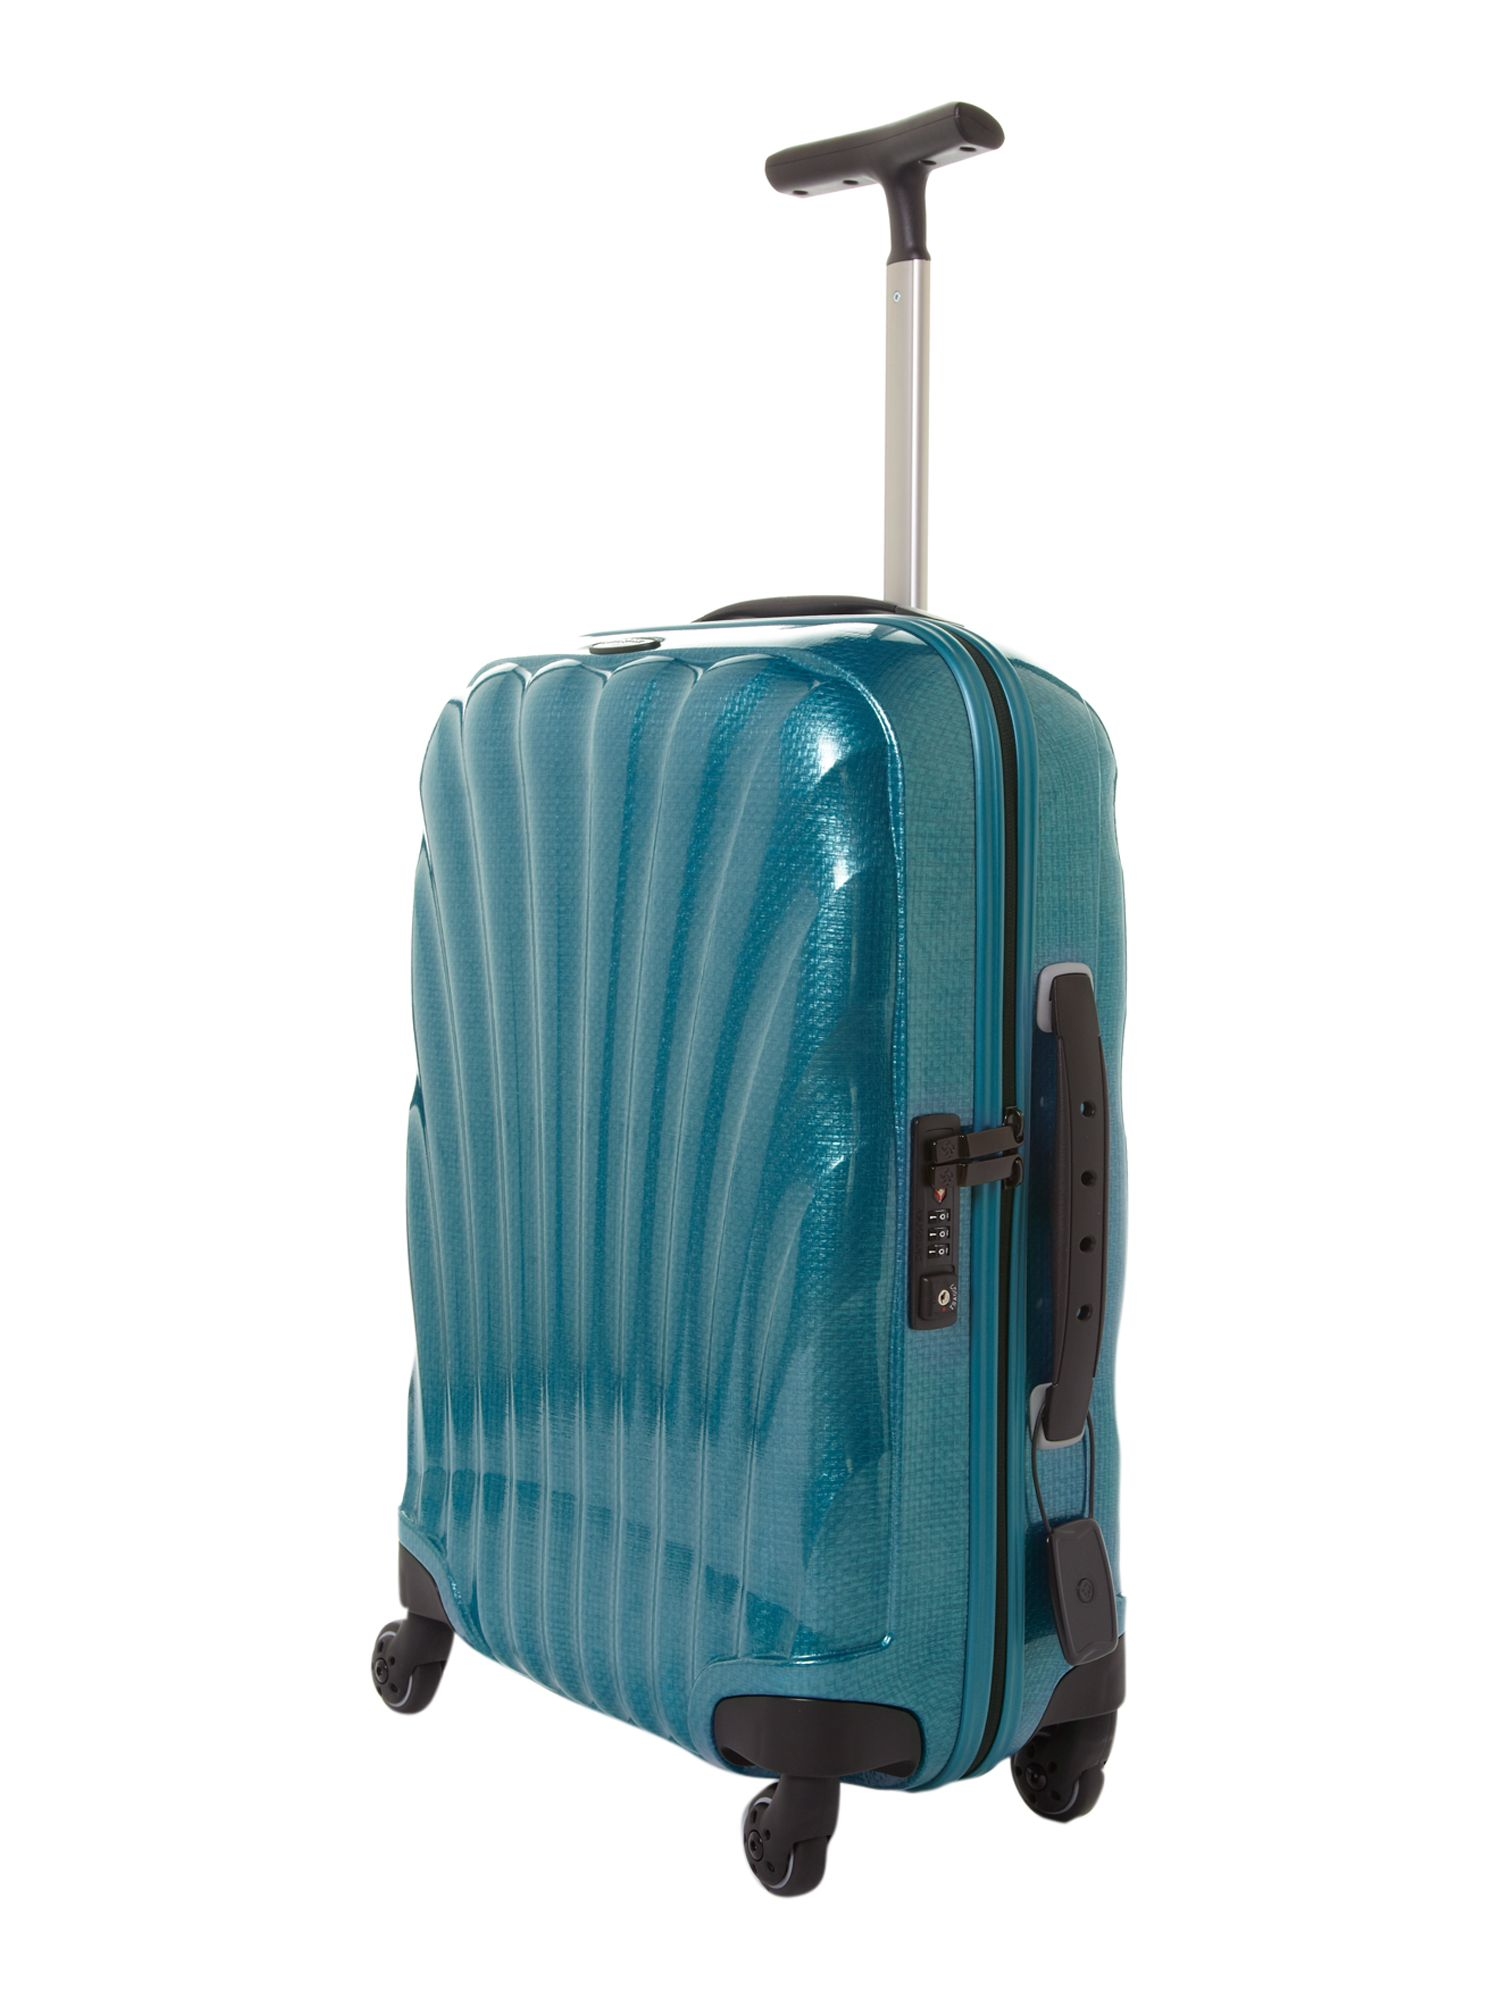 New cosmolite 4-wheel cabin suitcase